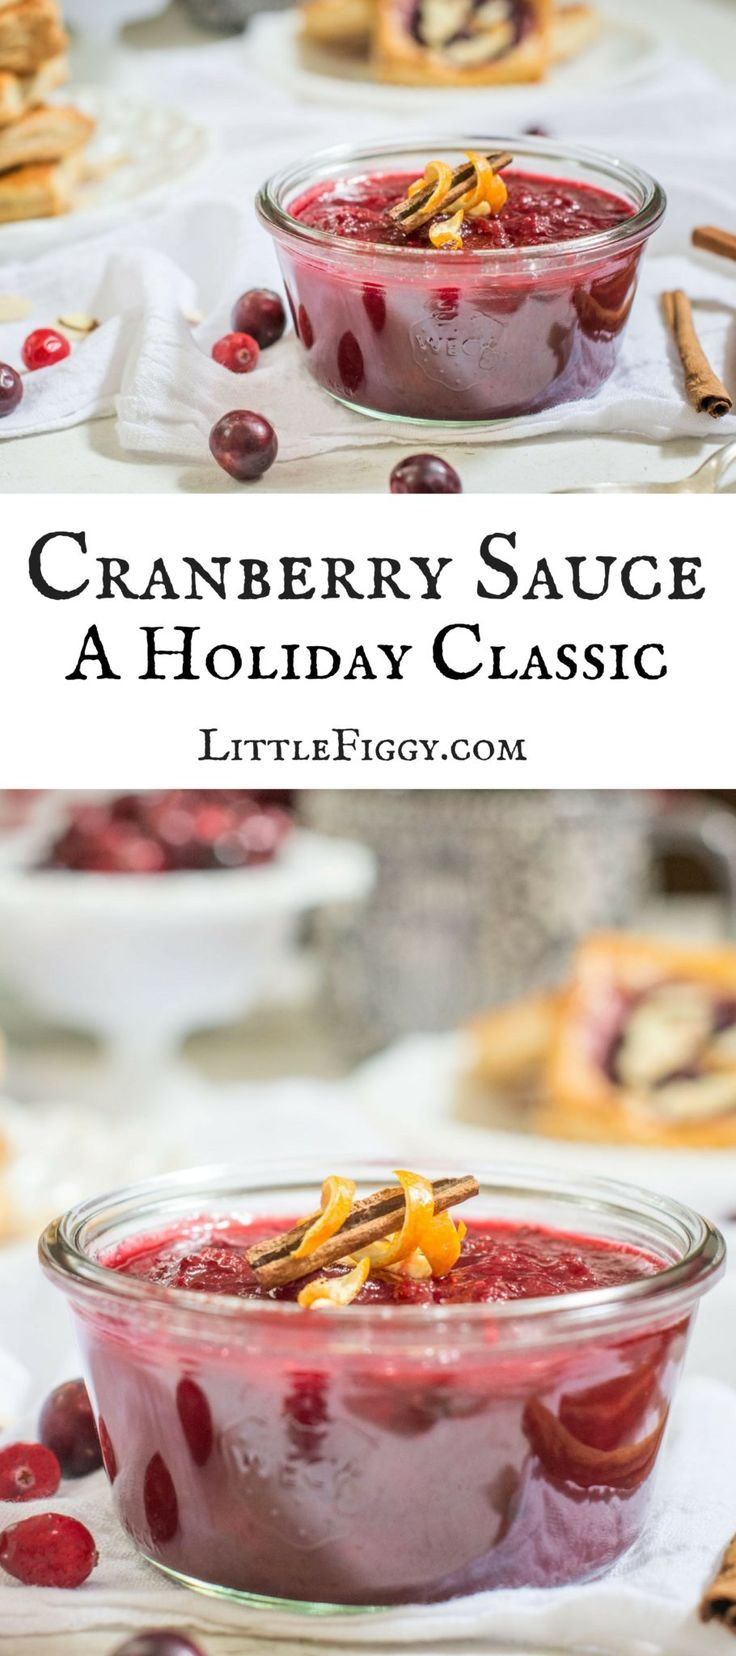 Easy to Make Cranberry Sauce, a Holiday Classic! Get the recipe at Little Figgy Food! via @LittleFiggyFood